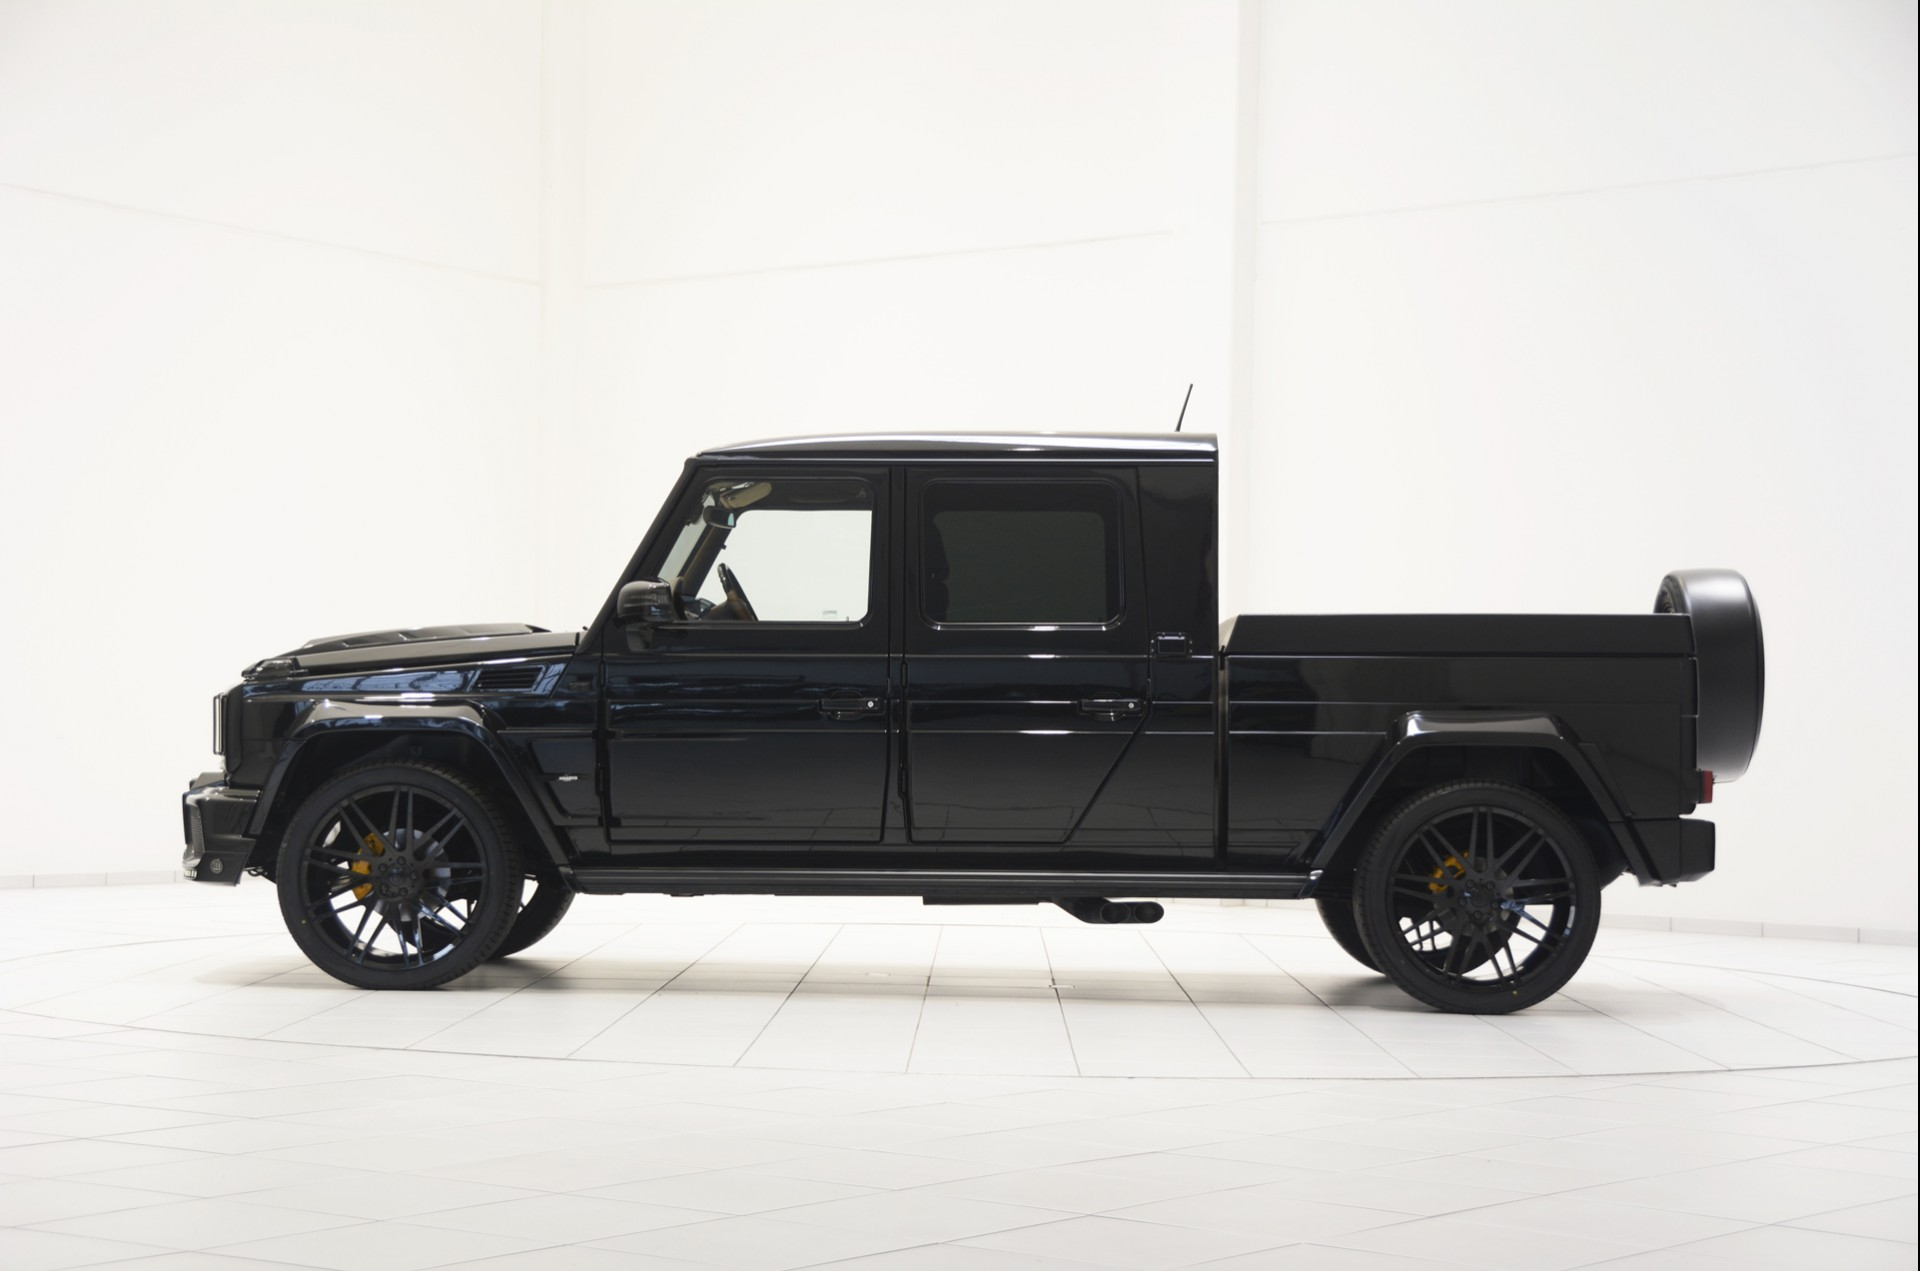 Brabus G500 L Pickup Truck Is Very Large Wide And Cool